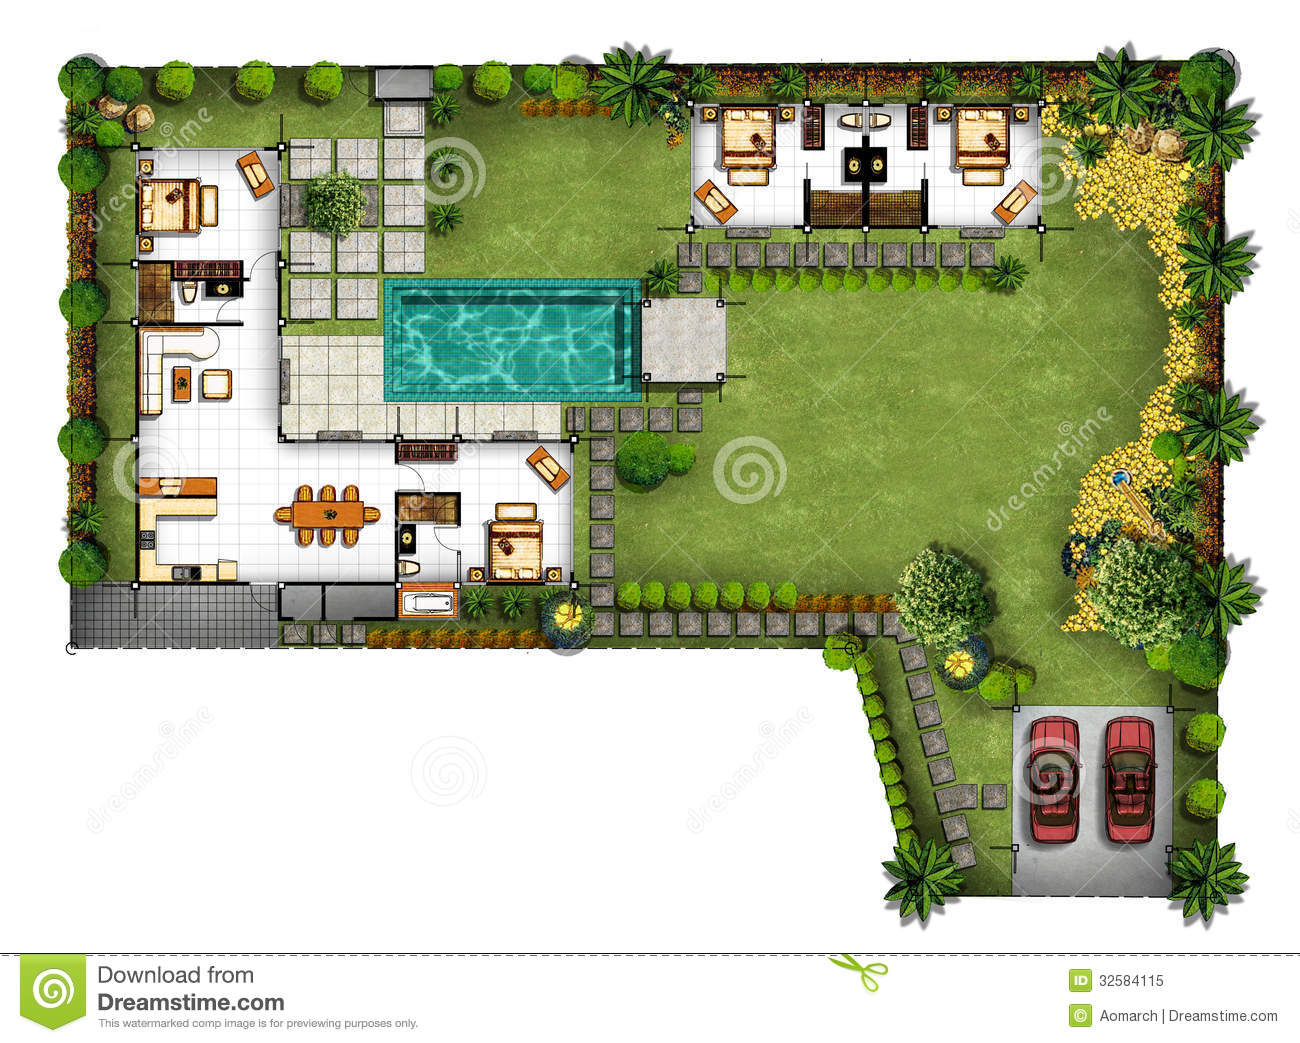 Plan de maison jardin for Plan amenagement jardin rectangulaire